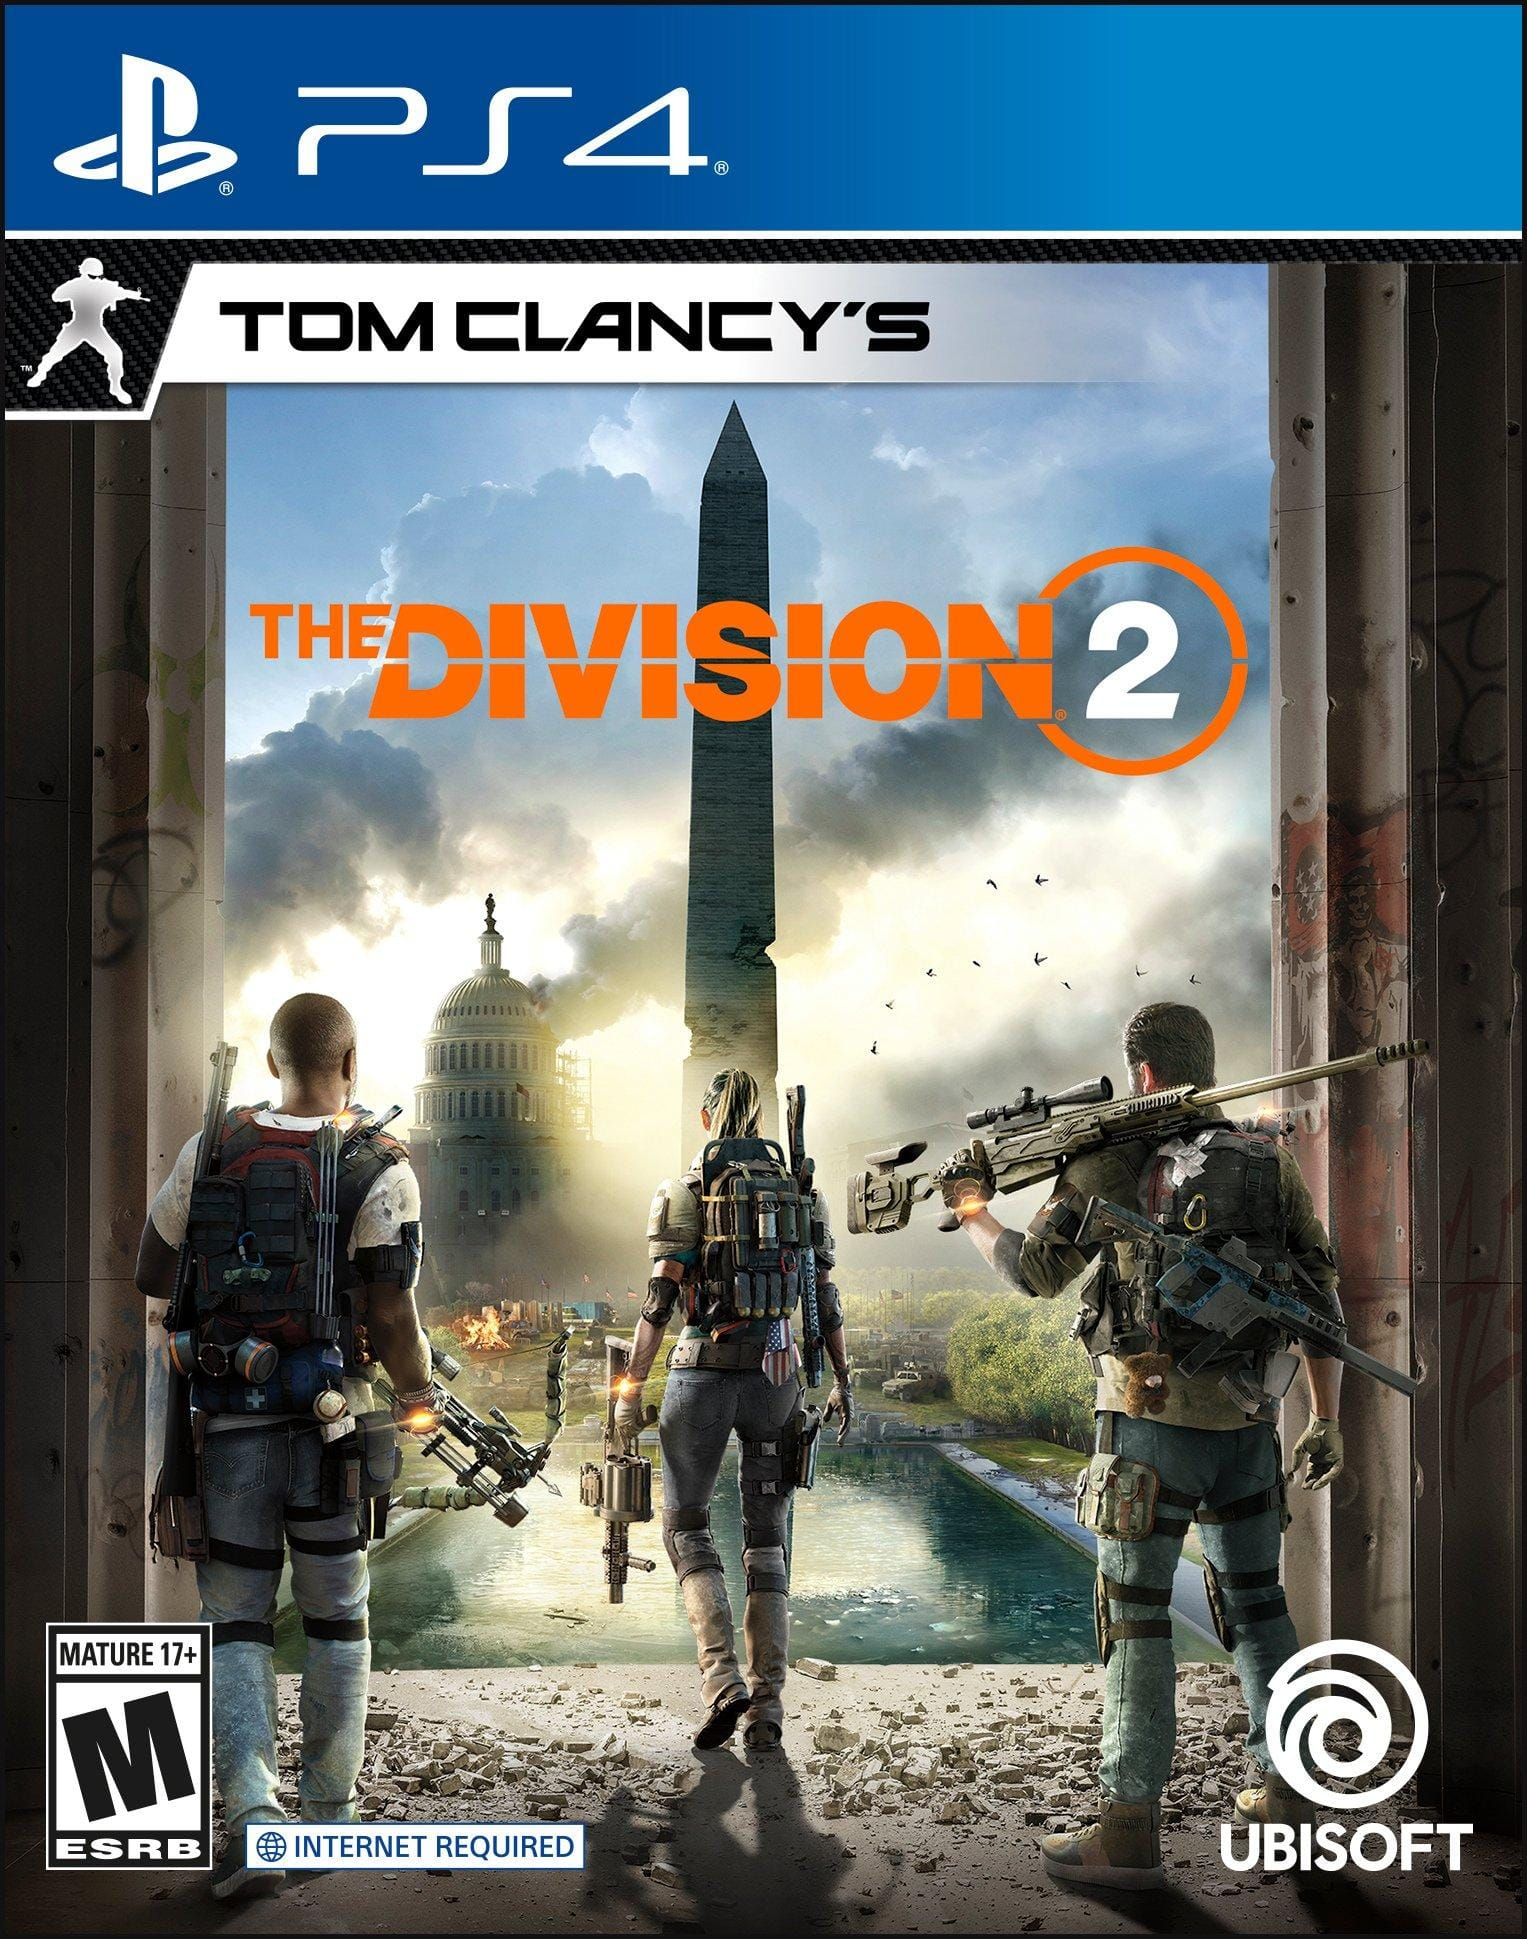 PlayStation 4 Tom Clancy The Division 2 at GameStop for $9.99